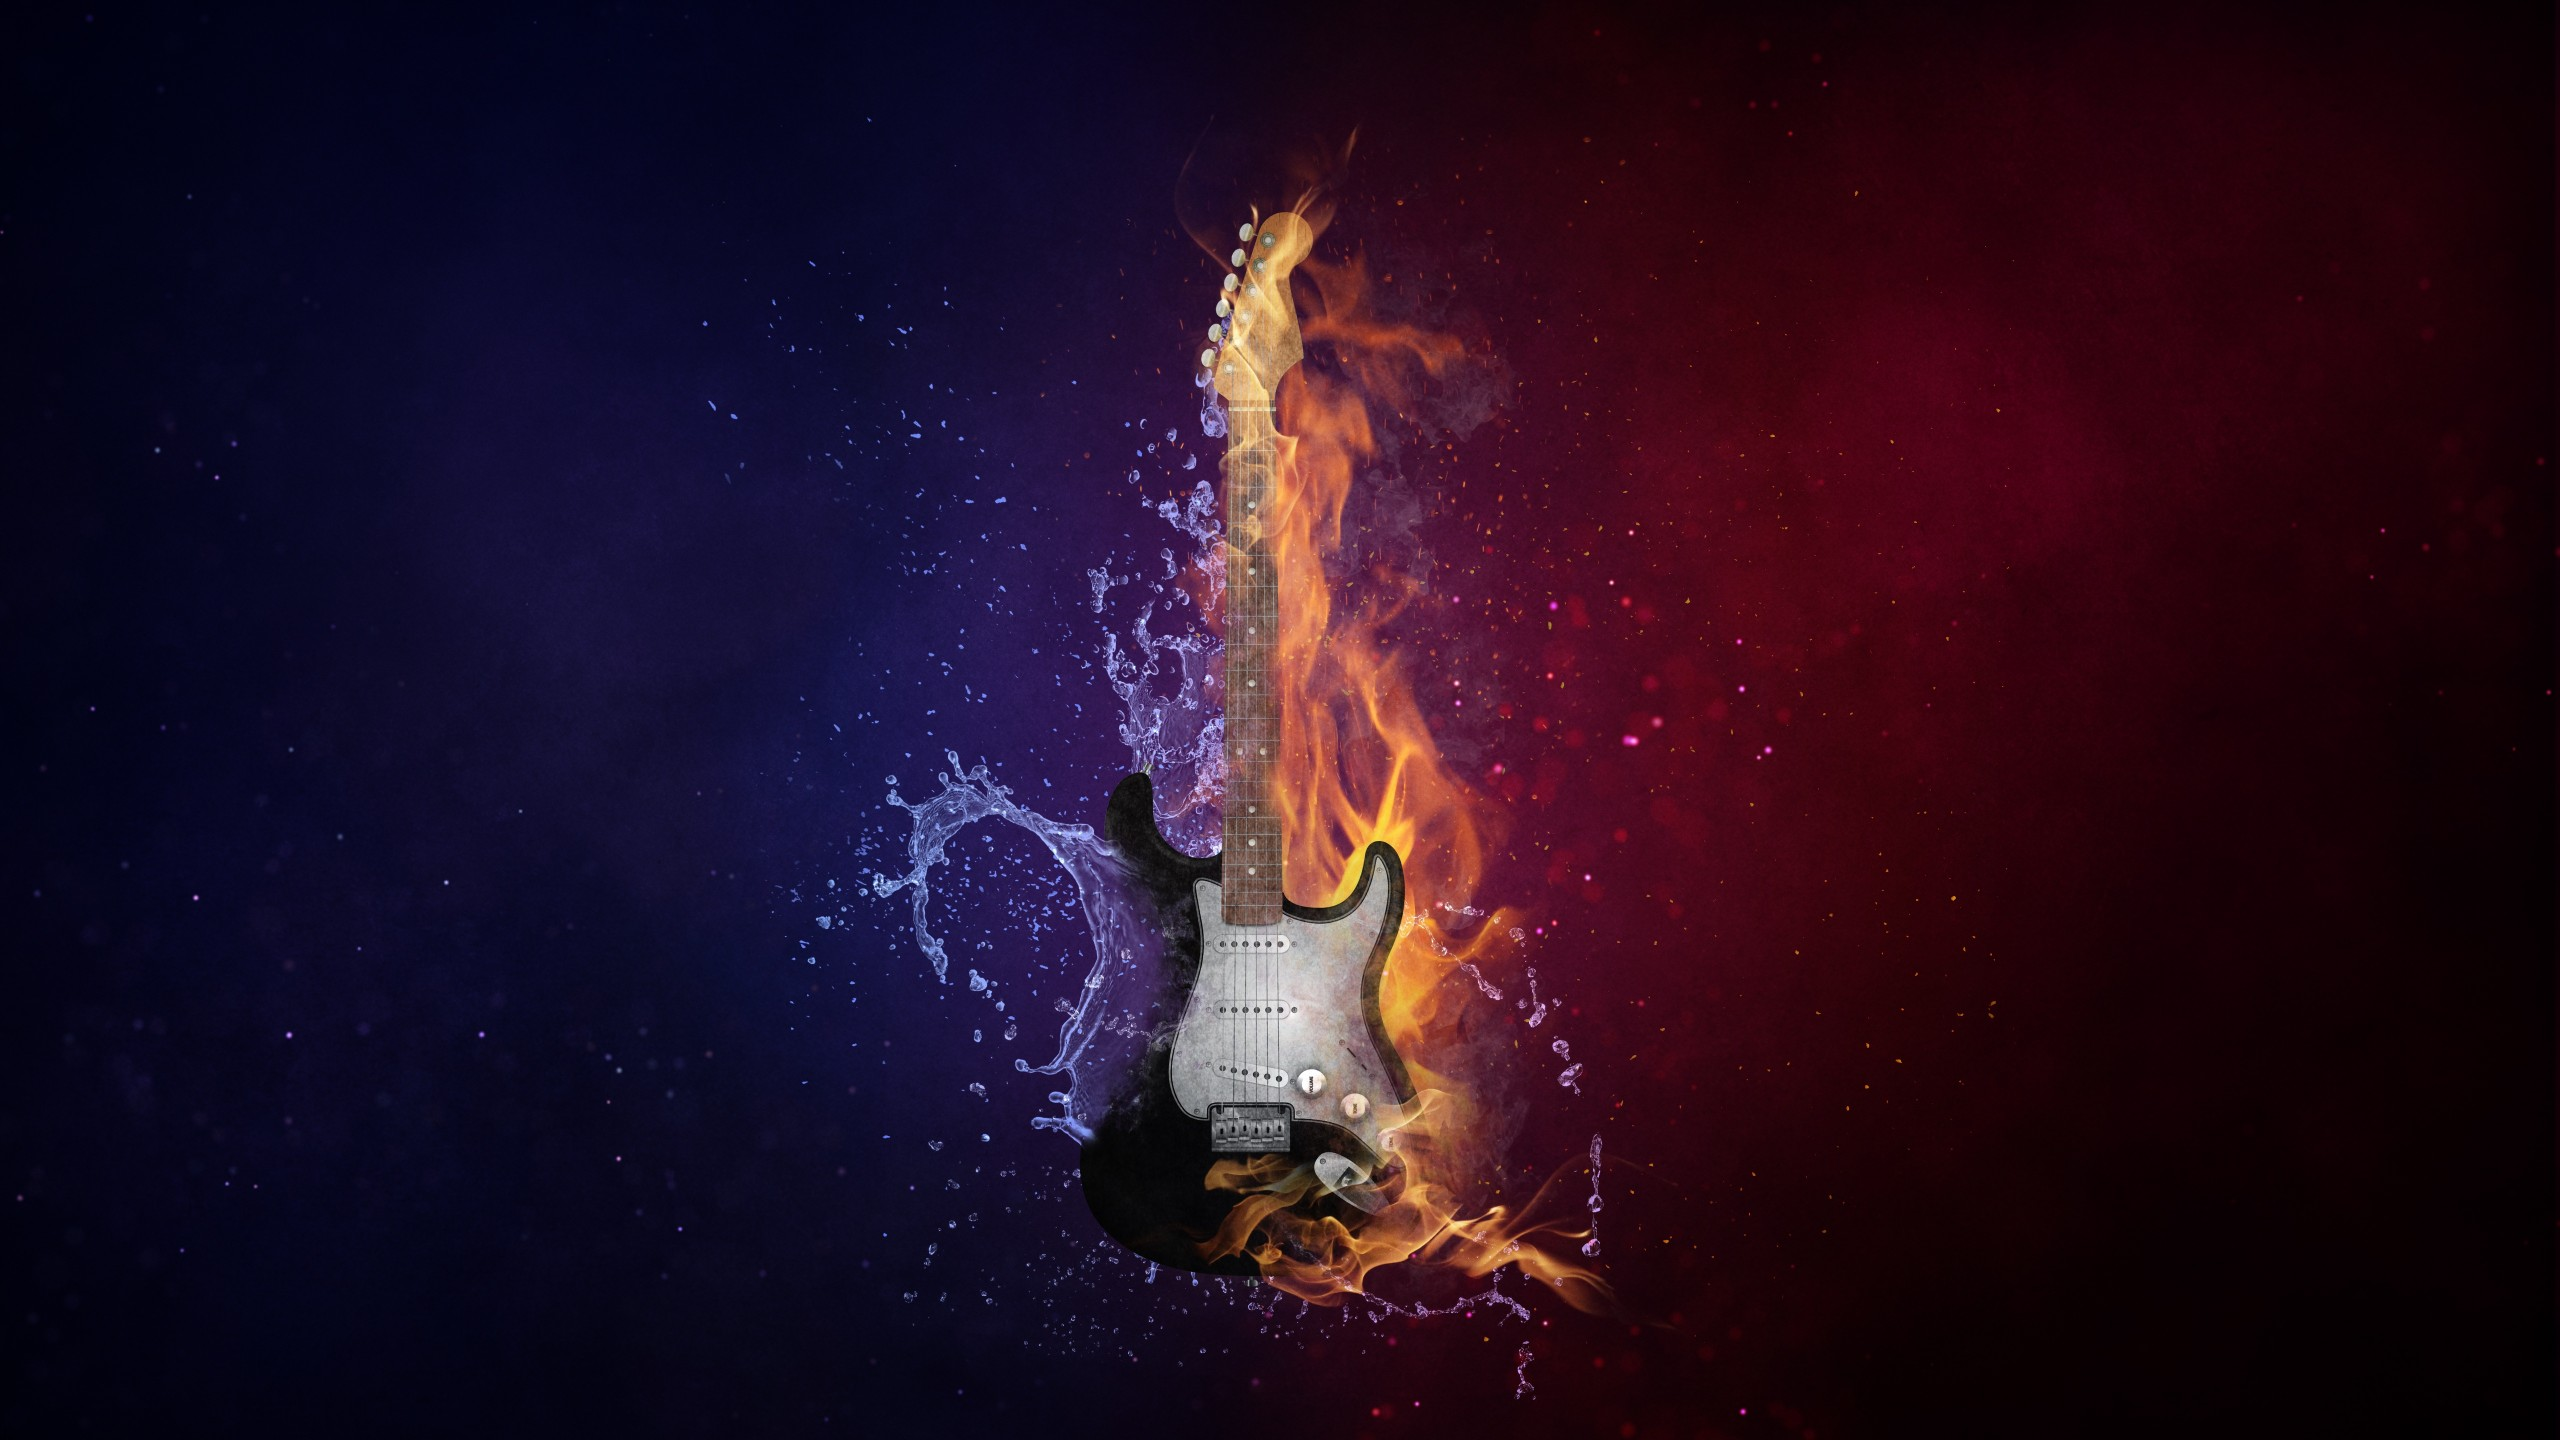 Iphone D Edm Guitar Fire Amp Cold 5k Wallpapers Hd Wallpapers Id 22623